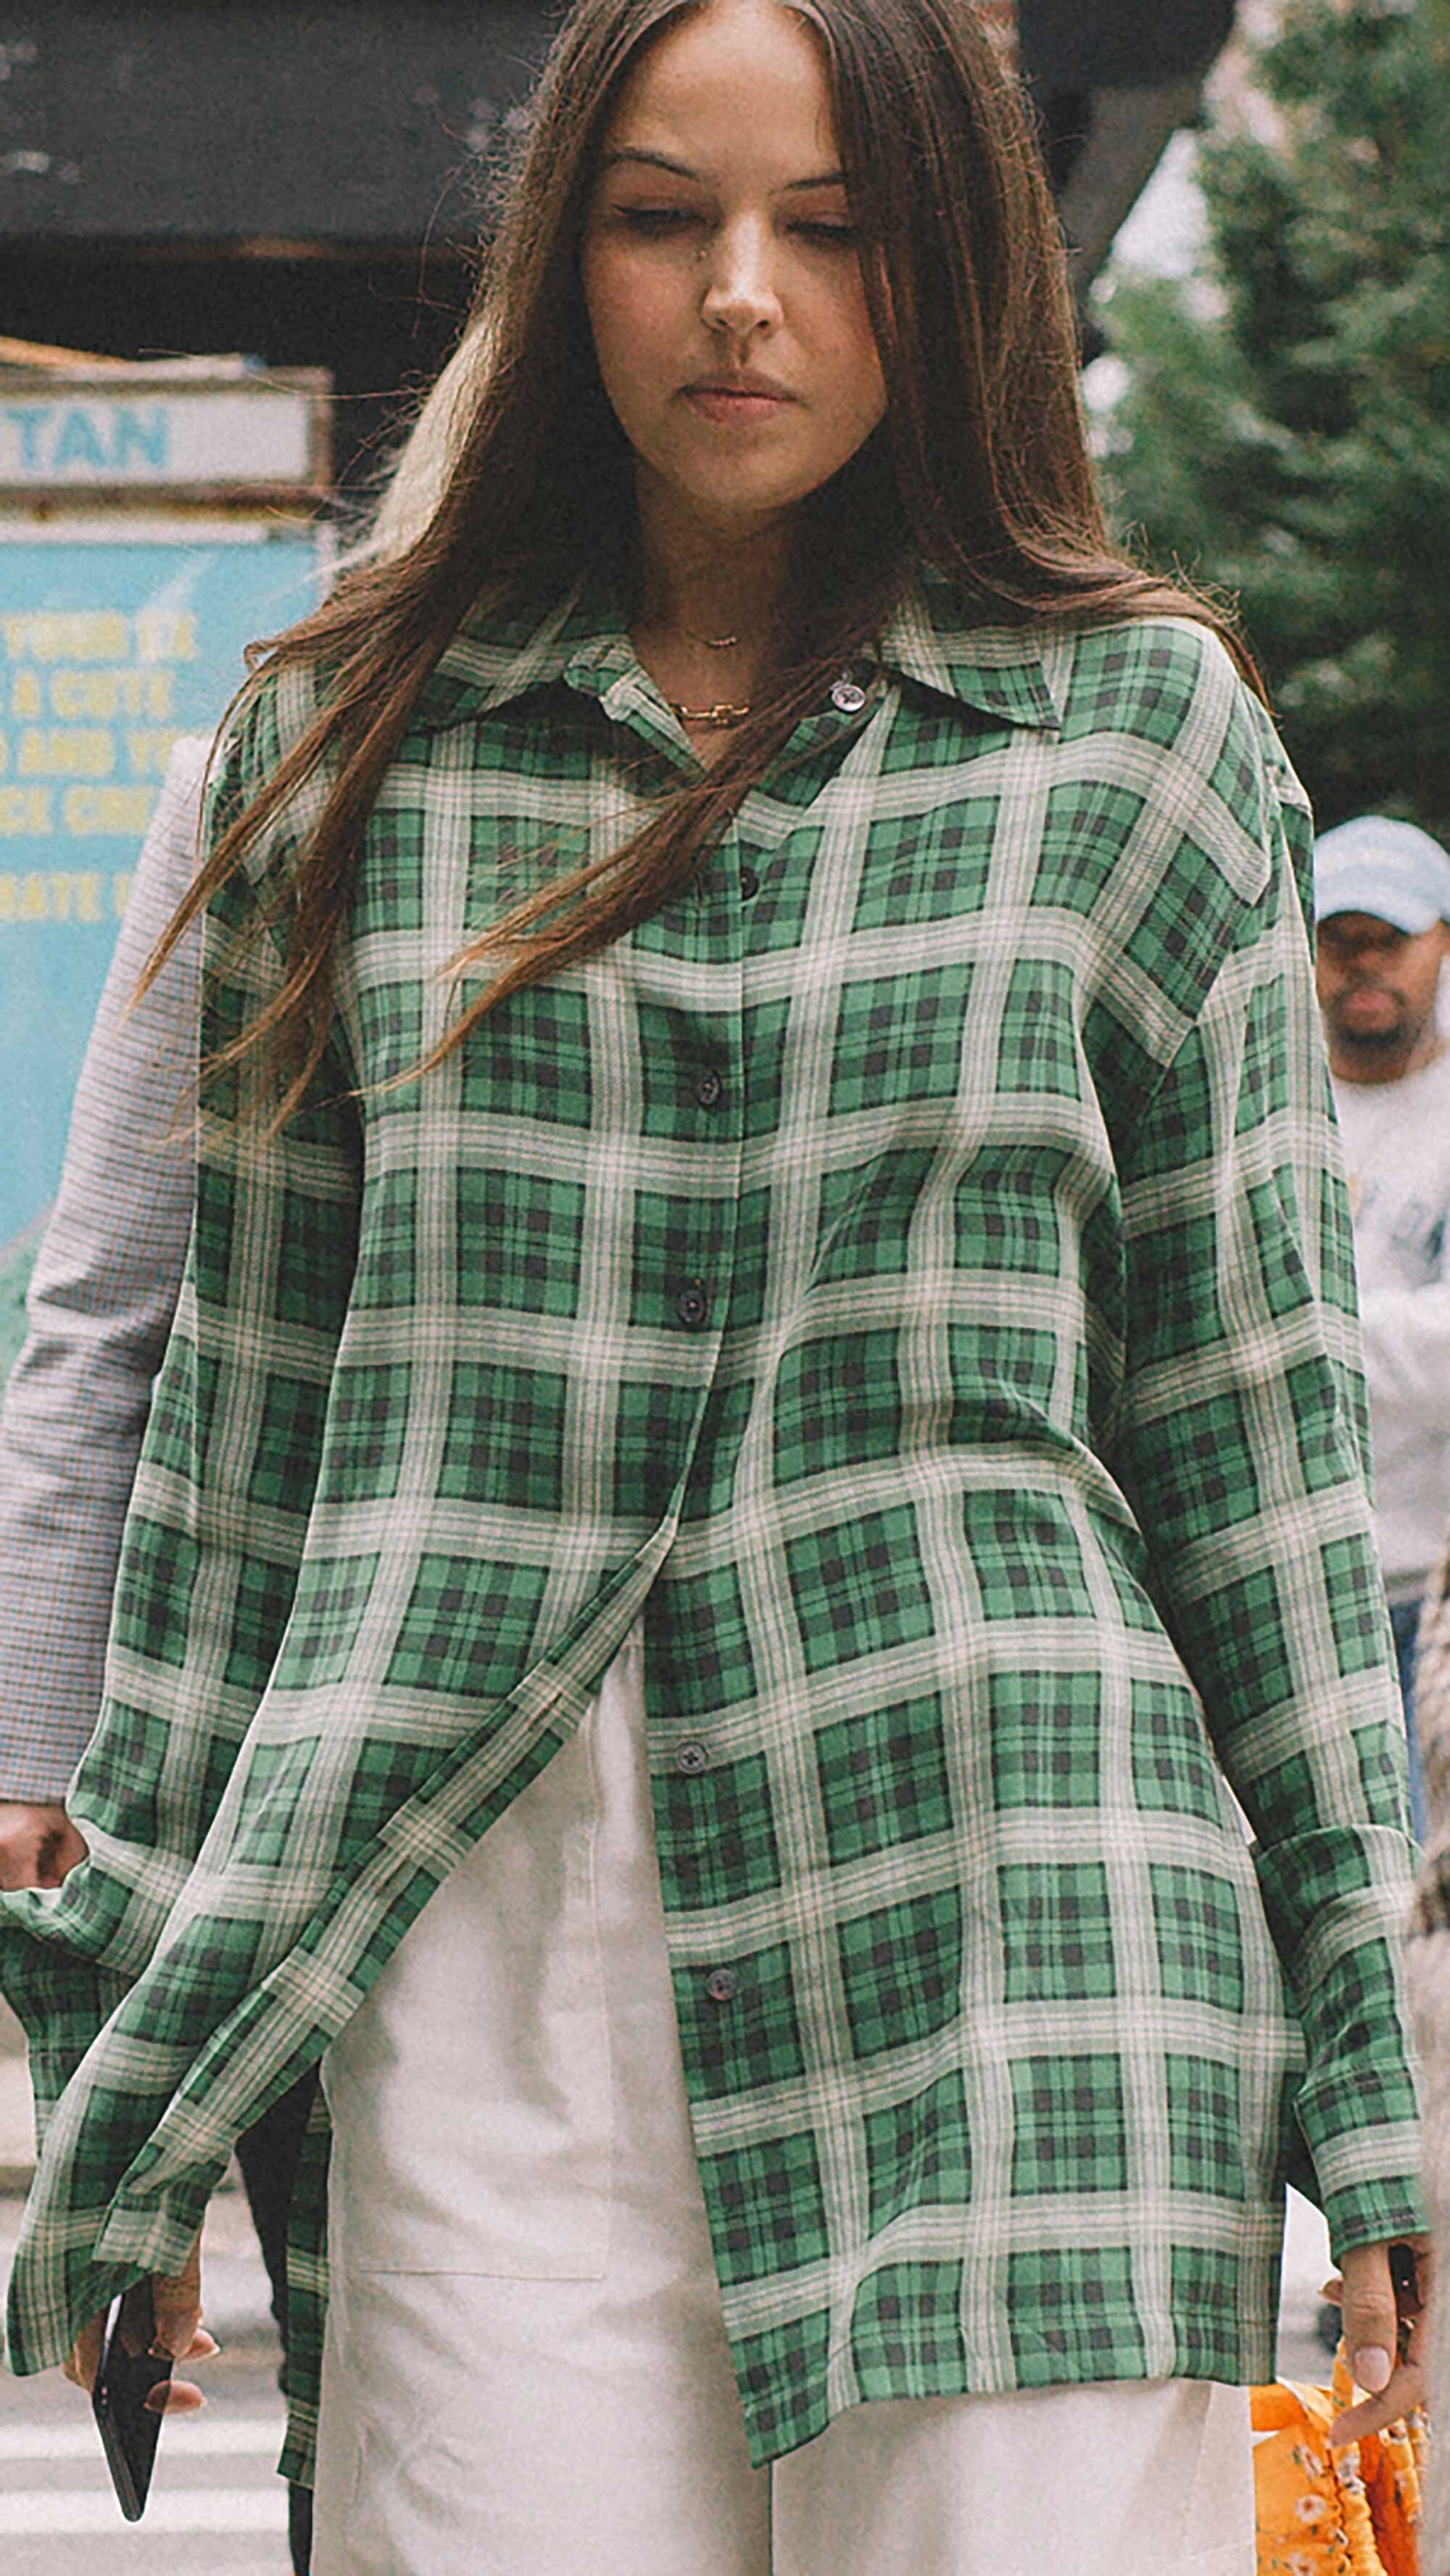 Best outfits of New York Fashion Week street style -43.jpg